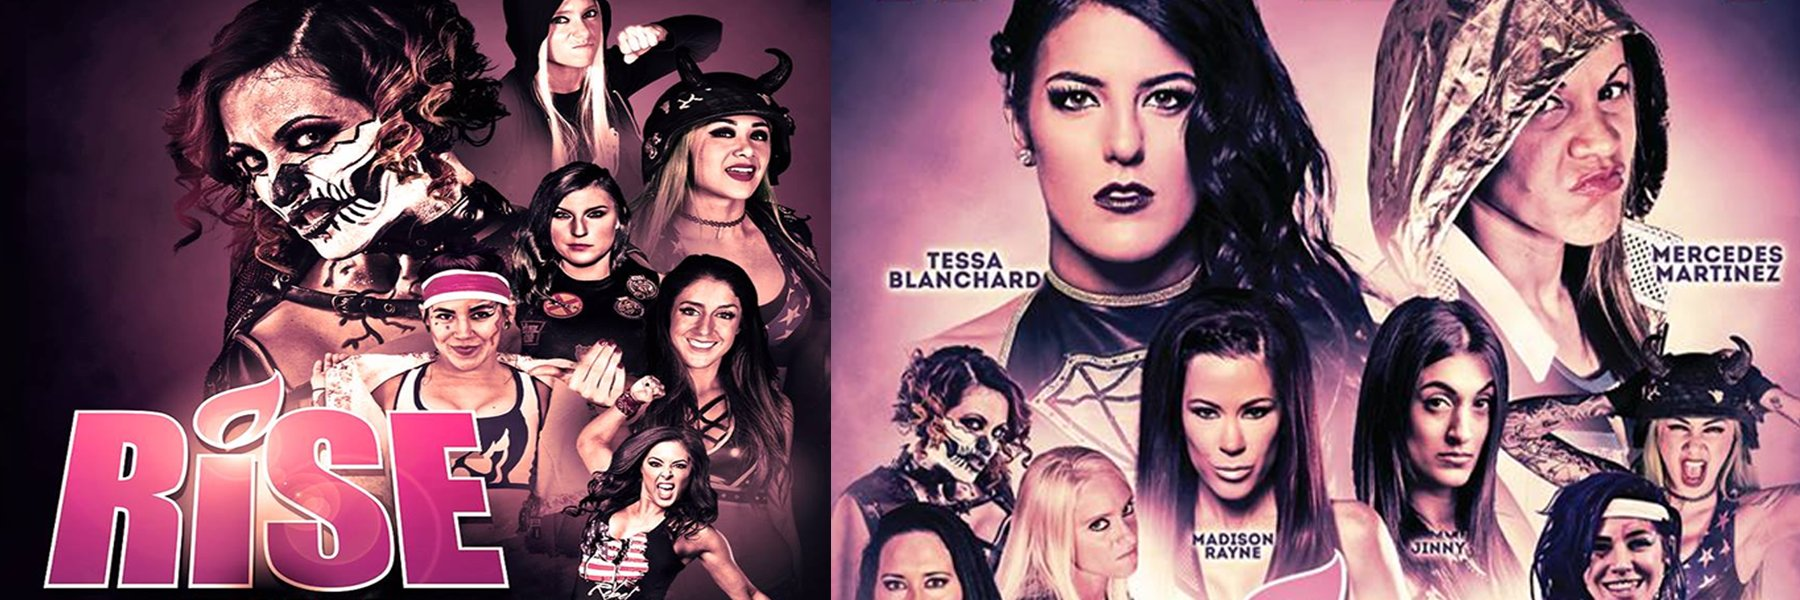 Watch the best RISE Women's Wrestling: Tessa Blanchard, Mercedes Martinez